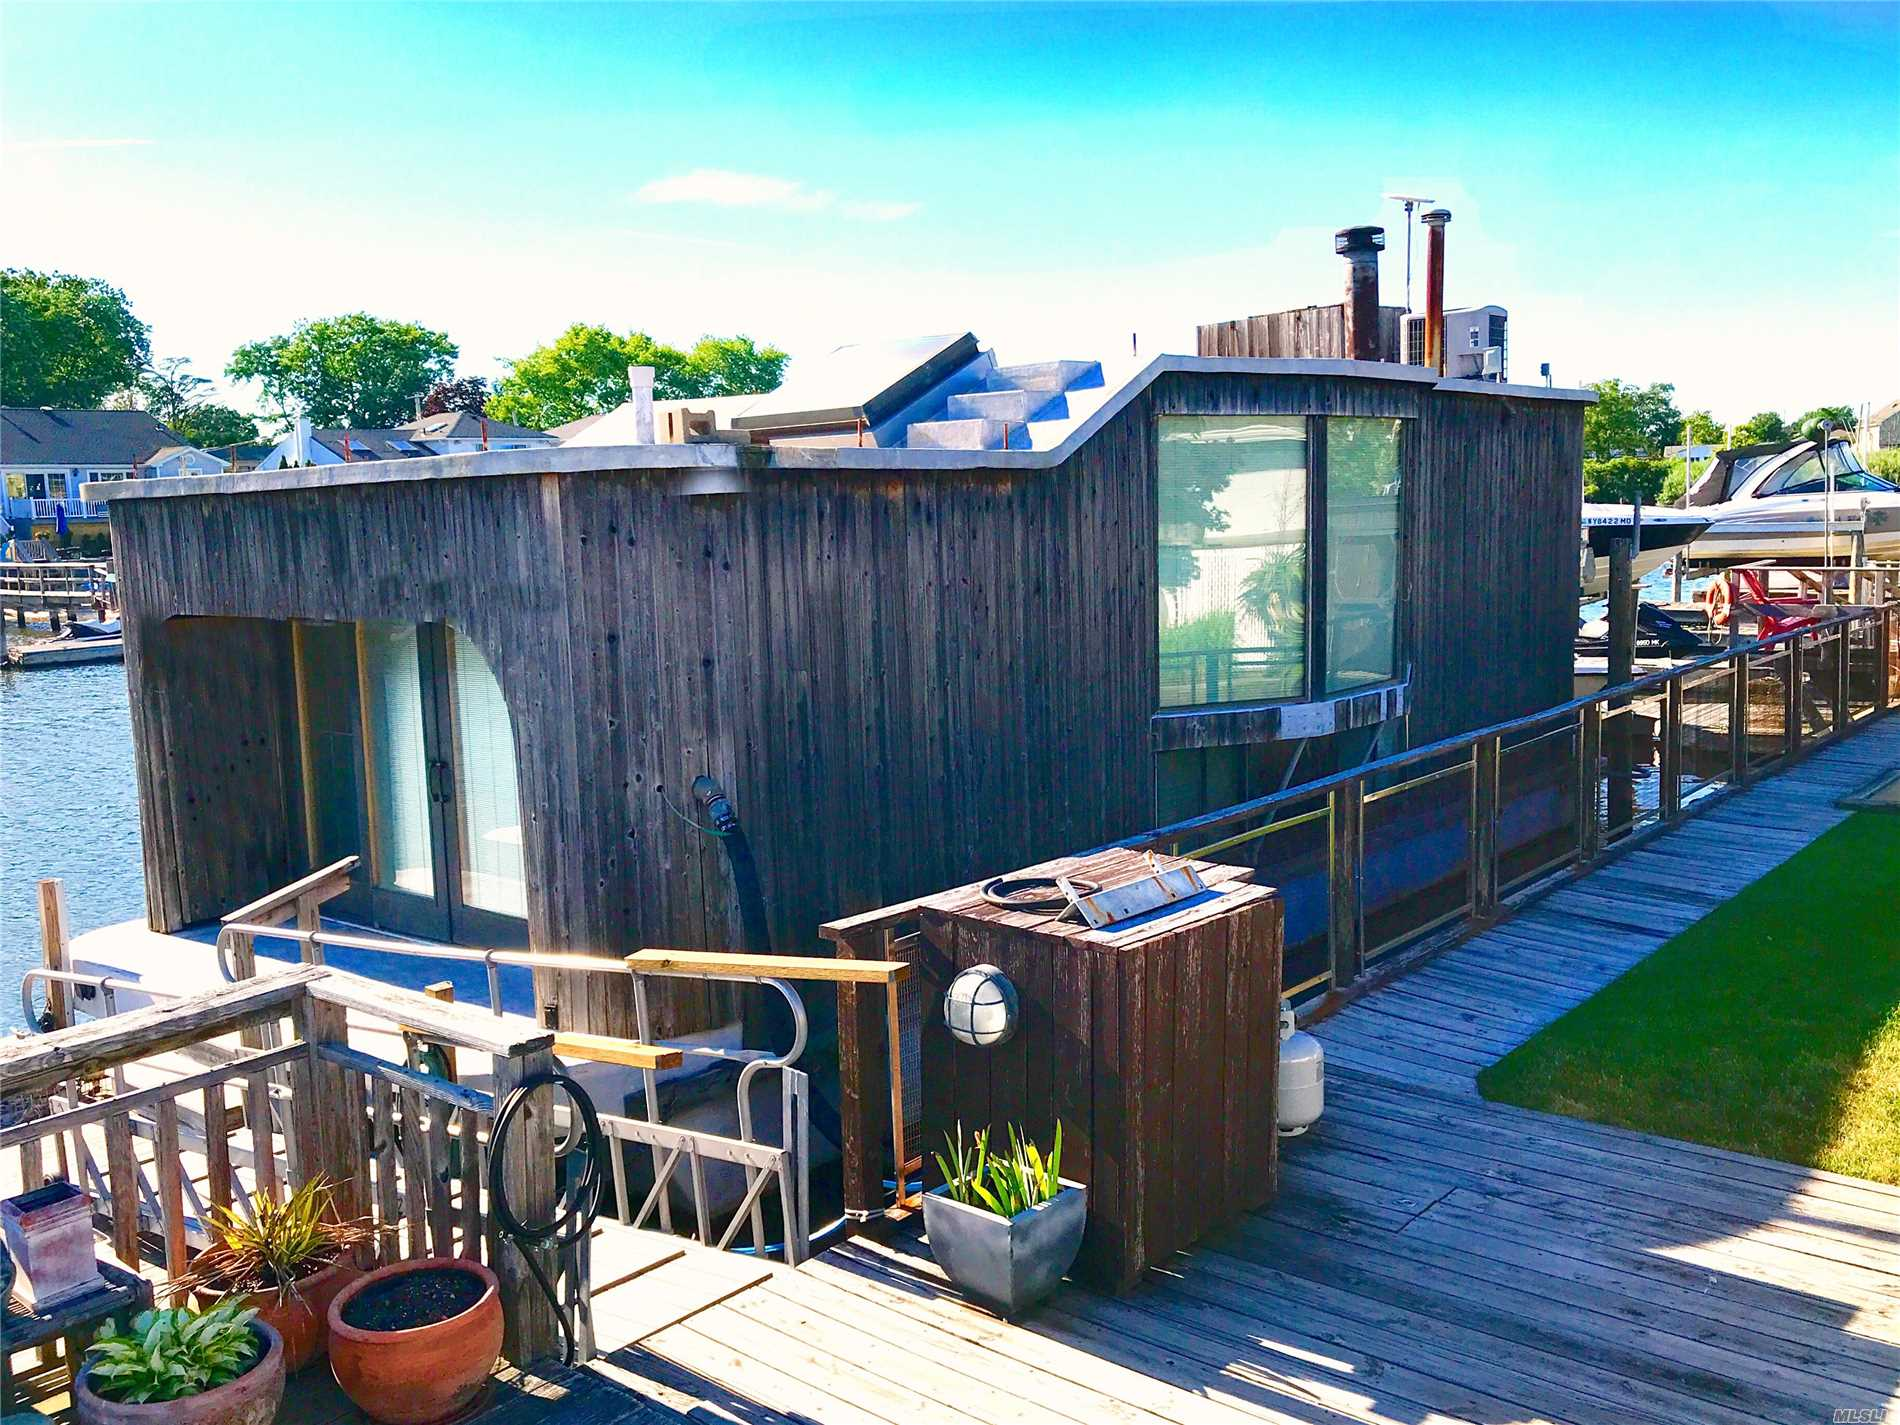 Realize Your Dream Of Living By The Water In Bellmore By Owning This Unique 2 Level Single Family Floating Home Constructed On Fiberglass Barge, Offered At $299, 000. Unbelievably Low Taxes-$1, 190 W/Star Exemption! Grandfthrd By County W/Perm.Residence Status. 4 Rms-Master, 2nd Bdrm, Fbth On Lwr Level. Kitchen Wi/Gran Cntr, Ss Apps, Gas Cooking & Sliders To Small Deck. Liv/Dinrm W/6 Full Length Wndws, Skylht & Wood Burning Frplce. Front Yrd W/Deck, 2Car Drwy, Shed & Ig Sprnklr.Cac, Wsh/Dry & More!